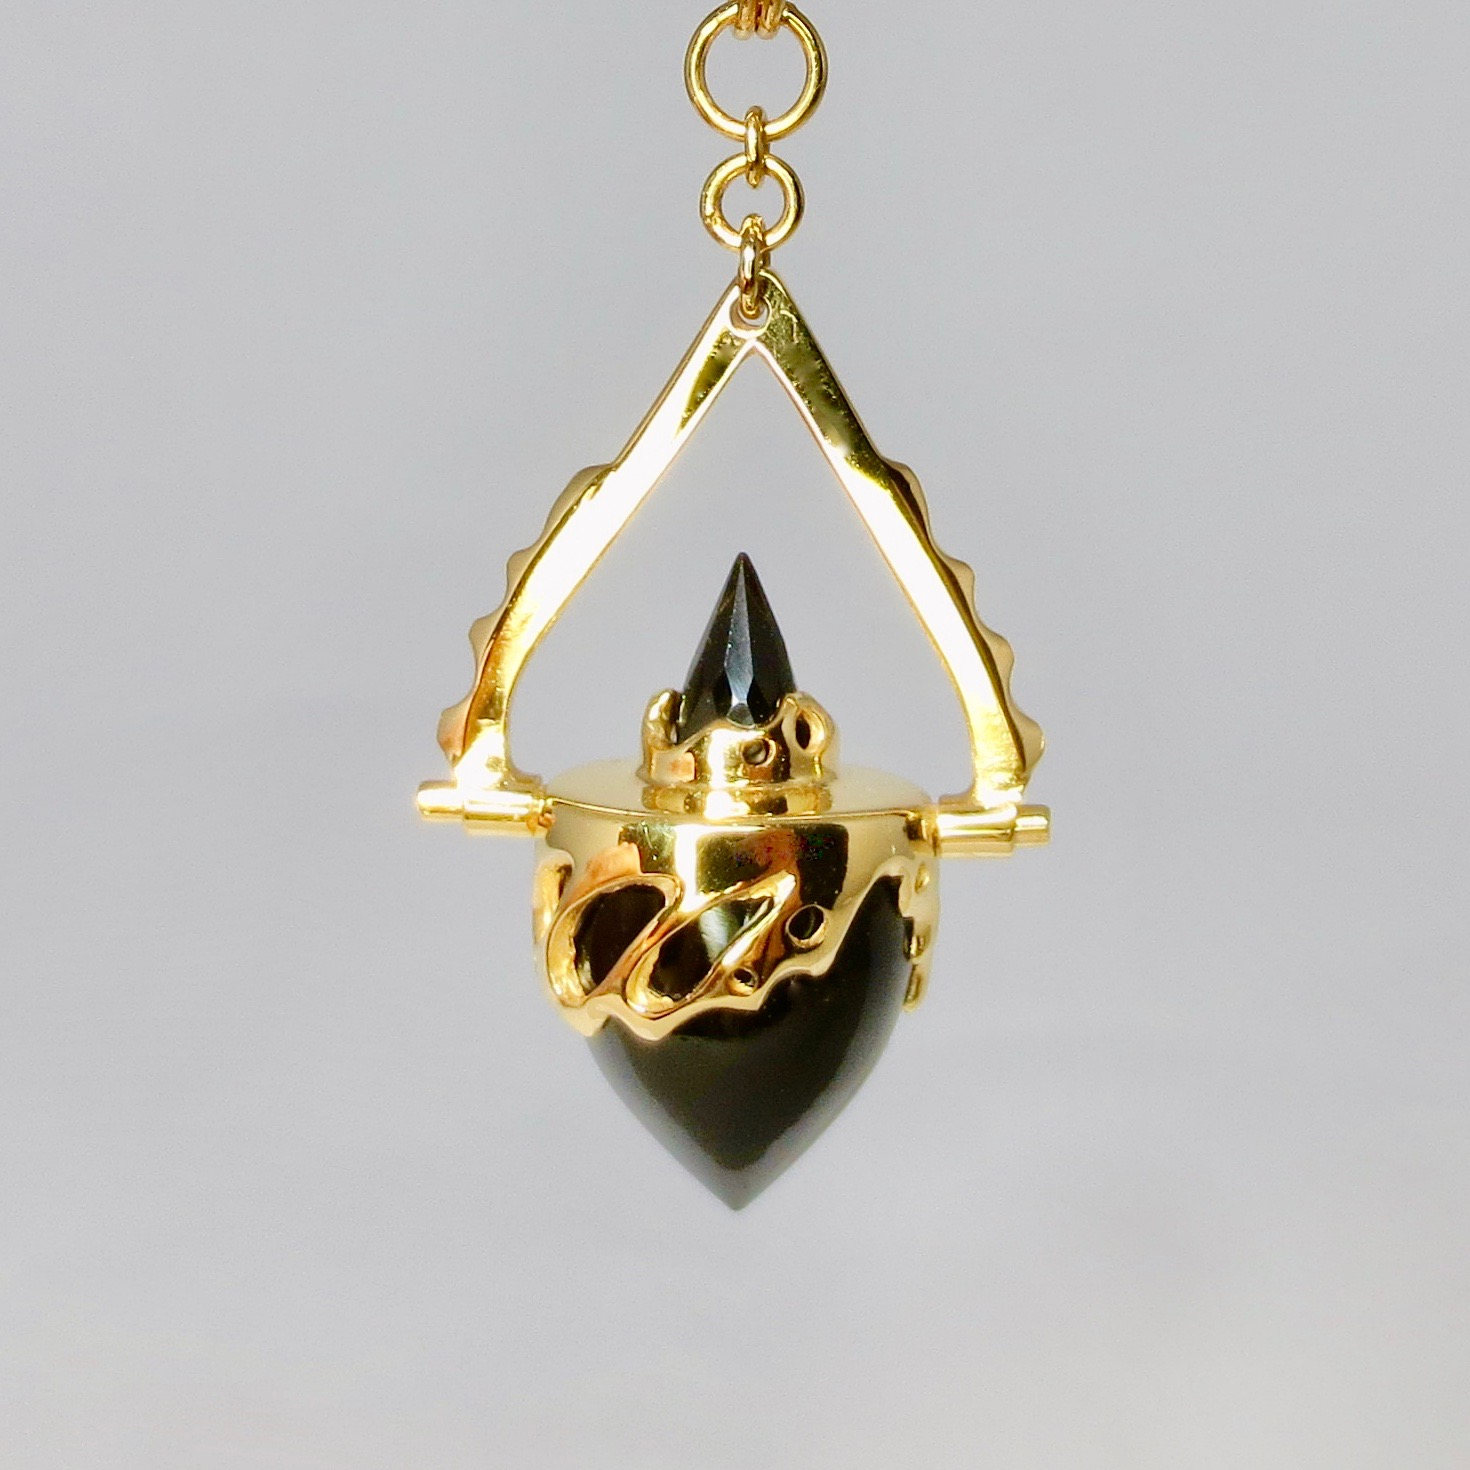 black onyx and gold pendant